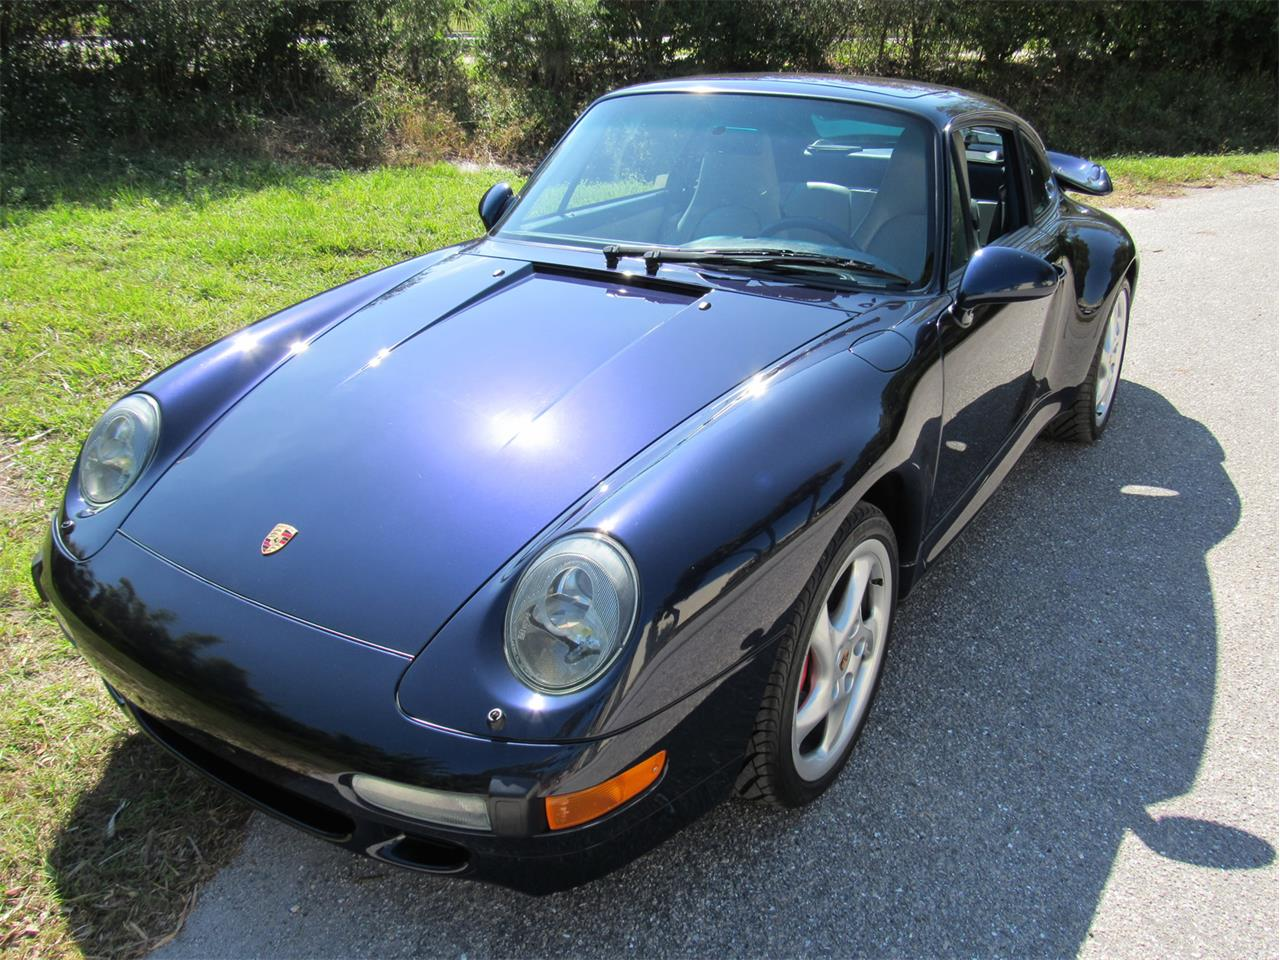 Large Picture of 1996 Porsche 993/911 Carrera Turbo located in Sarasota Florida Offered by Vintage Motors Sarasota - MCL2